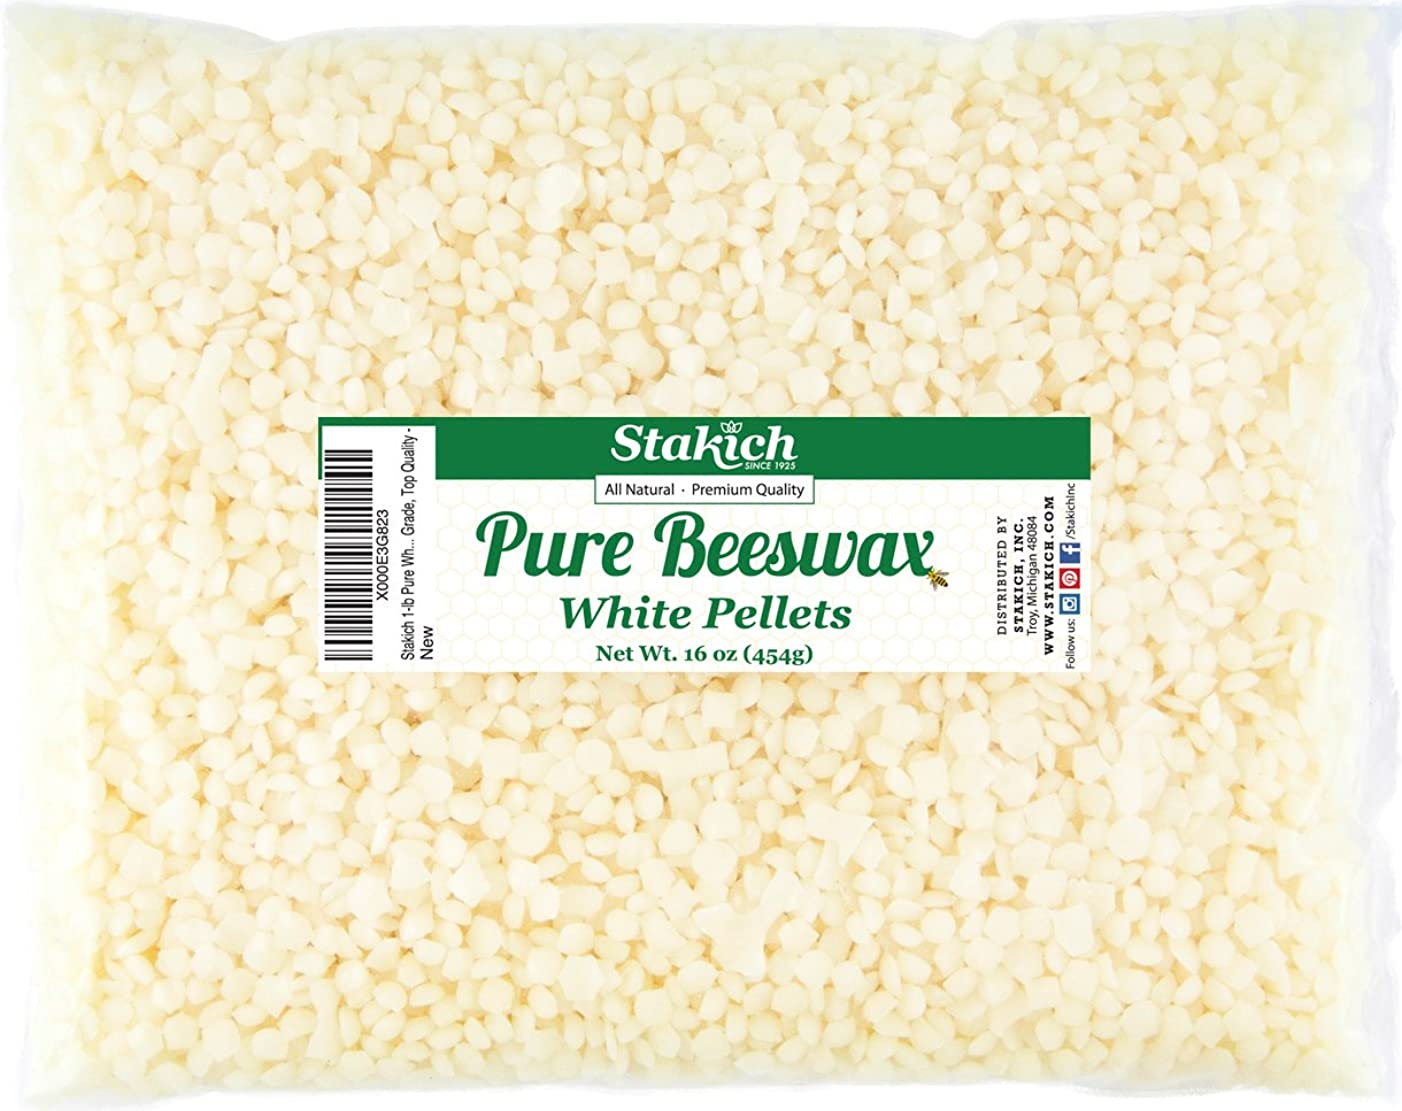 Stakich Pure White Beeswax Pellets - 100% Natural, Cosmetic Grade, Premium Quality - 5 lb (in 1 lb Bags)